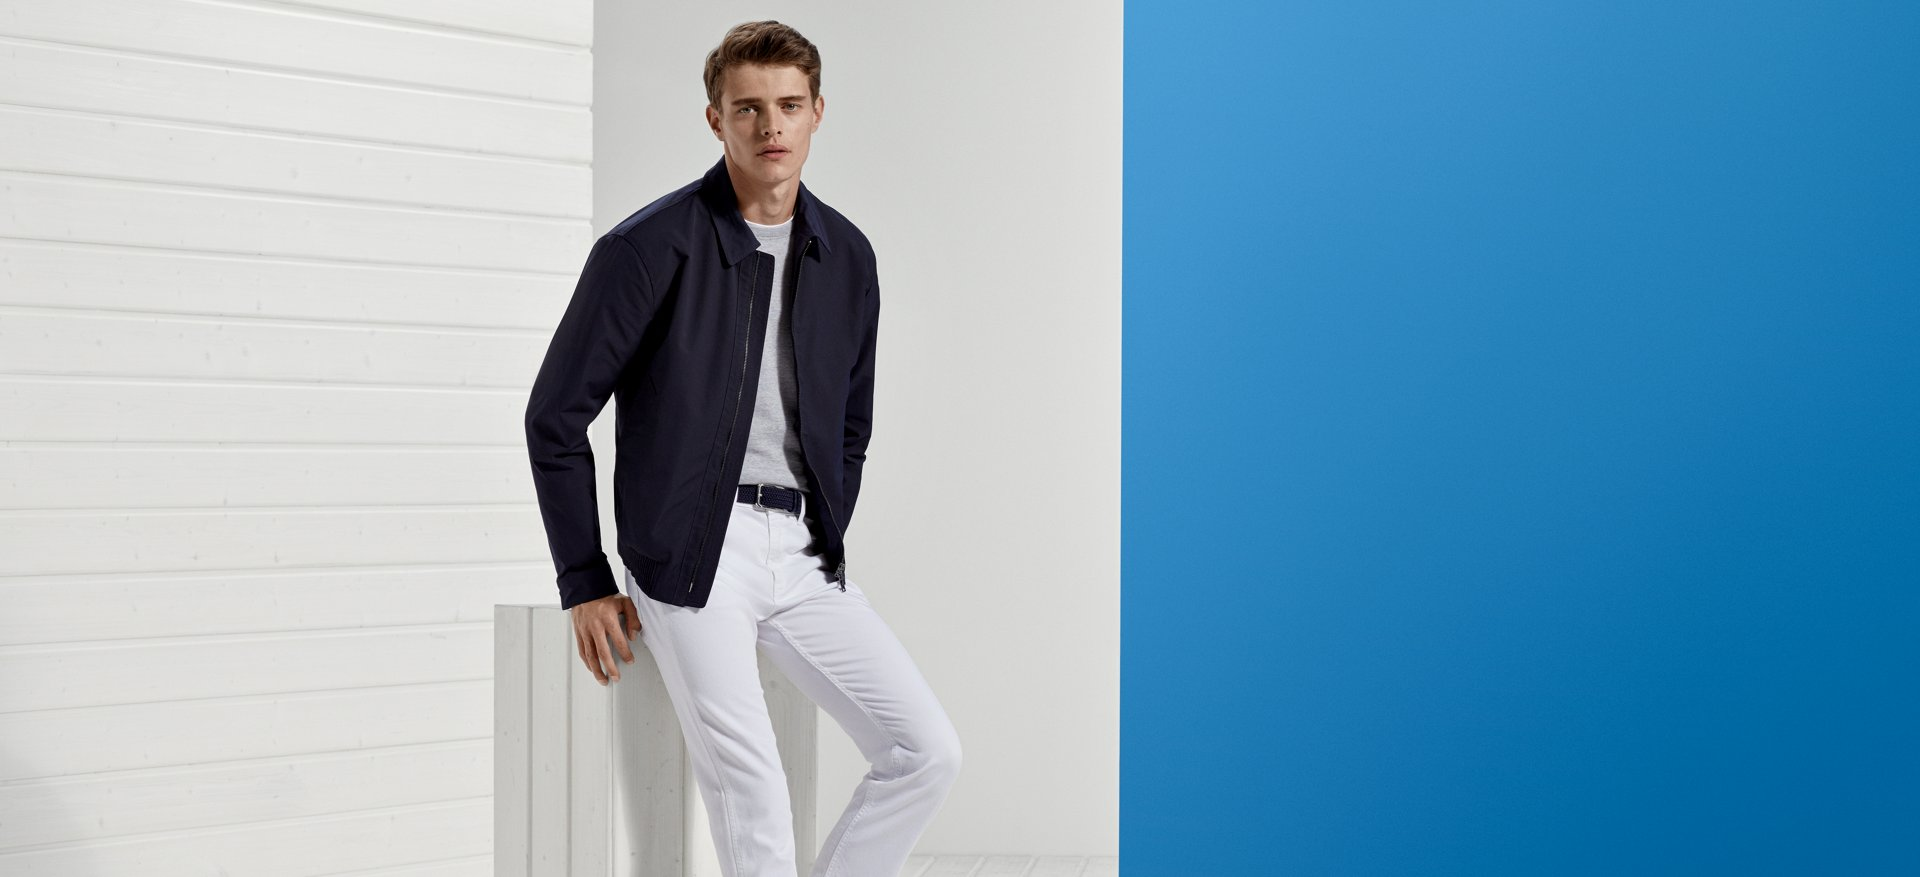 Must-haves for men by BOSS | Wardrobe Staples